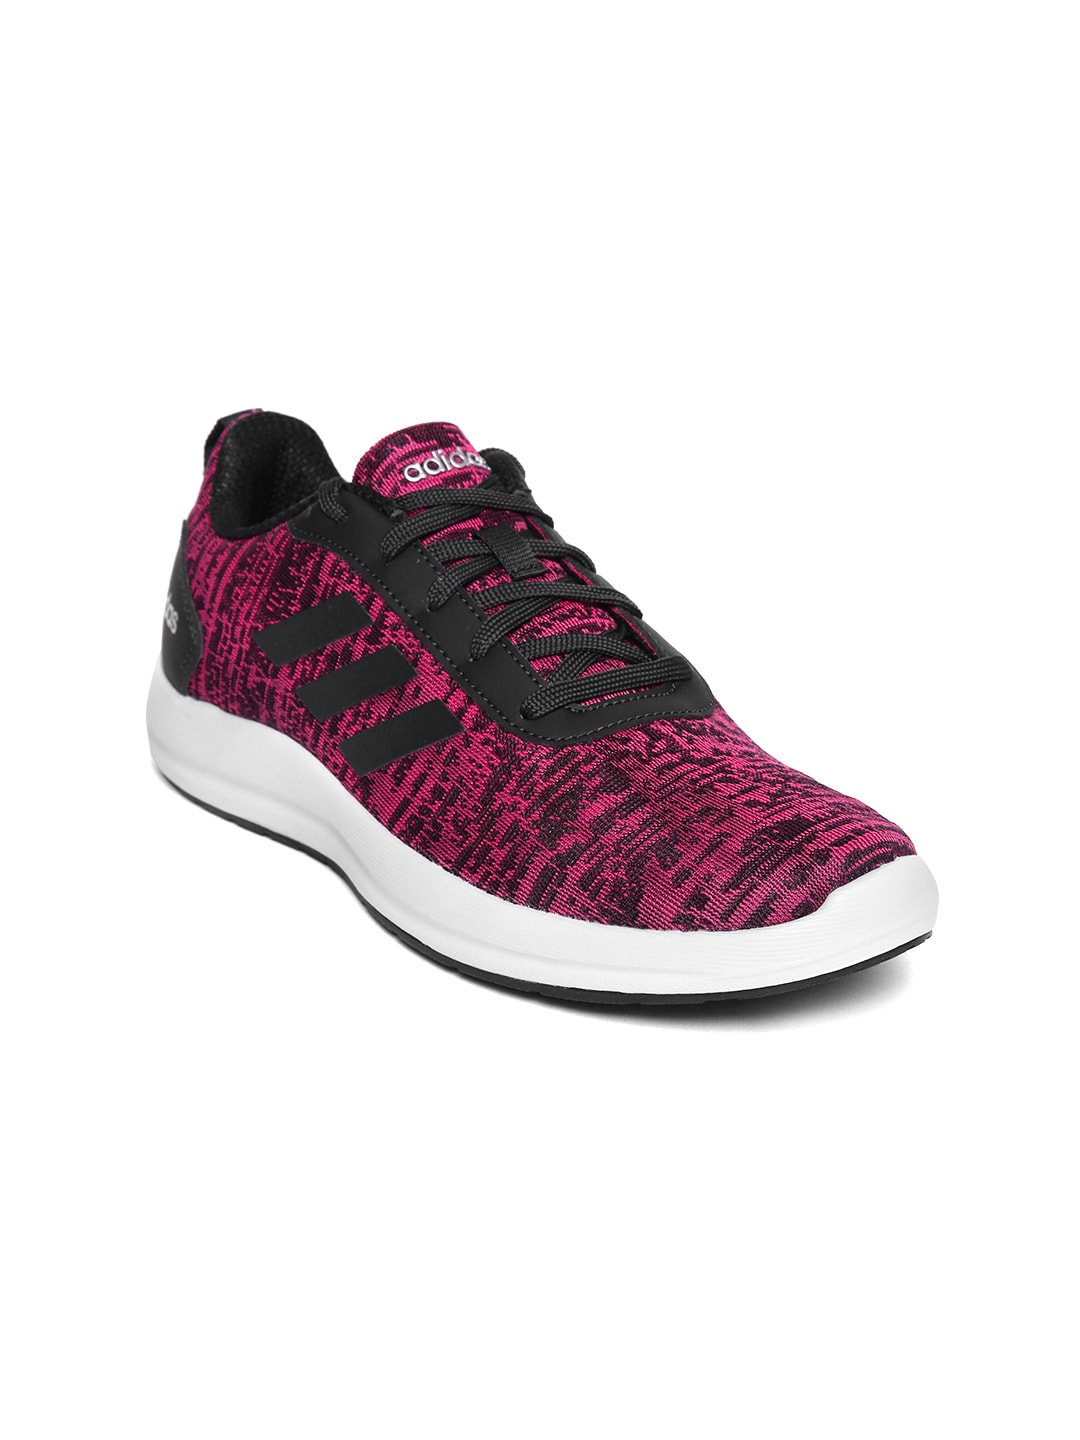 newest ebe9d db644 Sports Shoes for Women - Buy Women Sports Shoes Online   Myntra